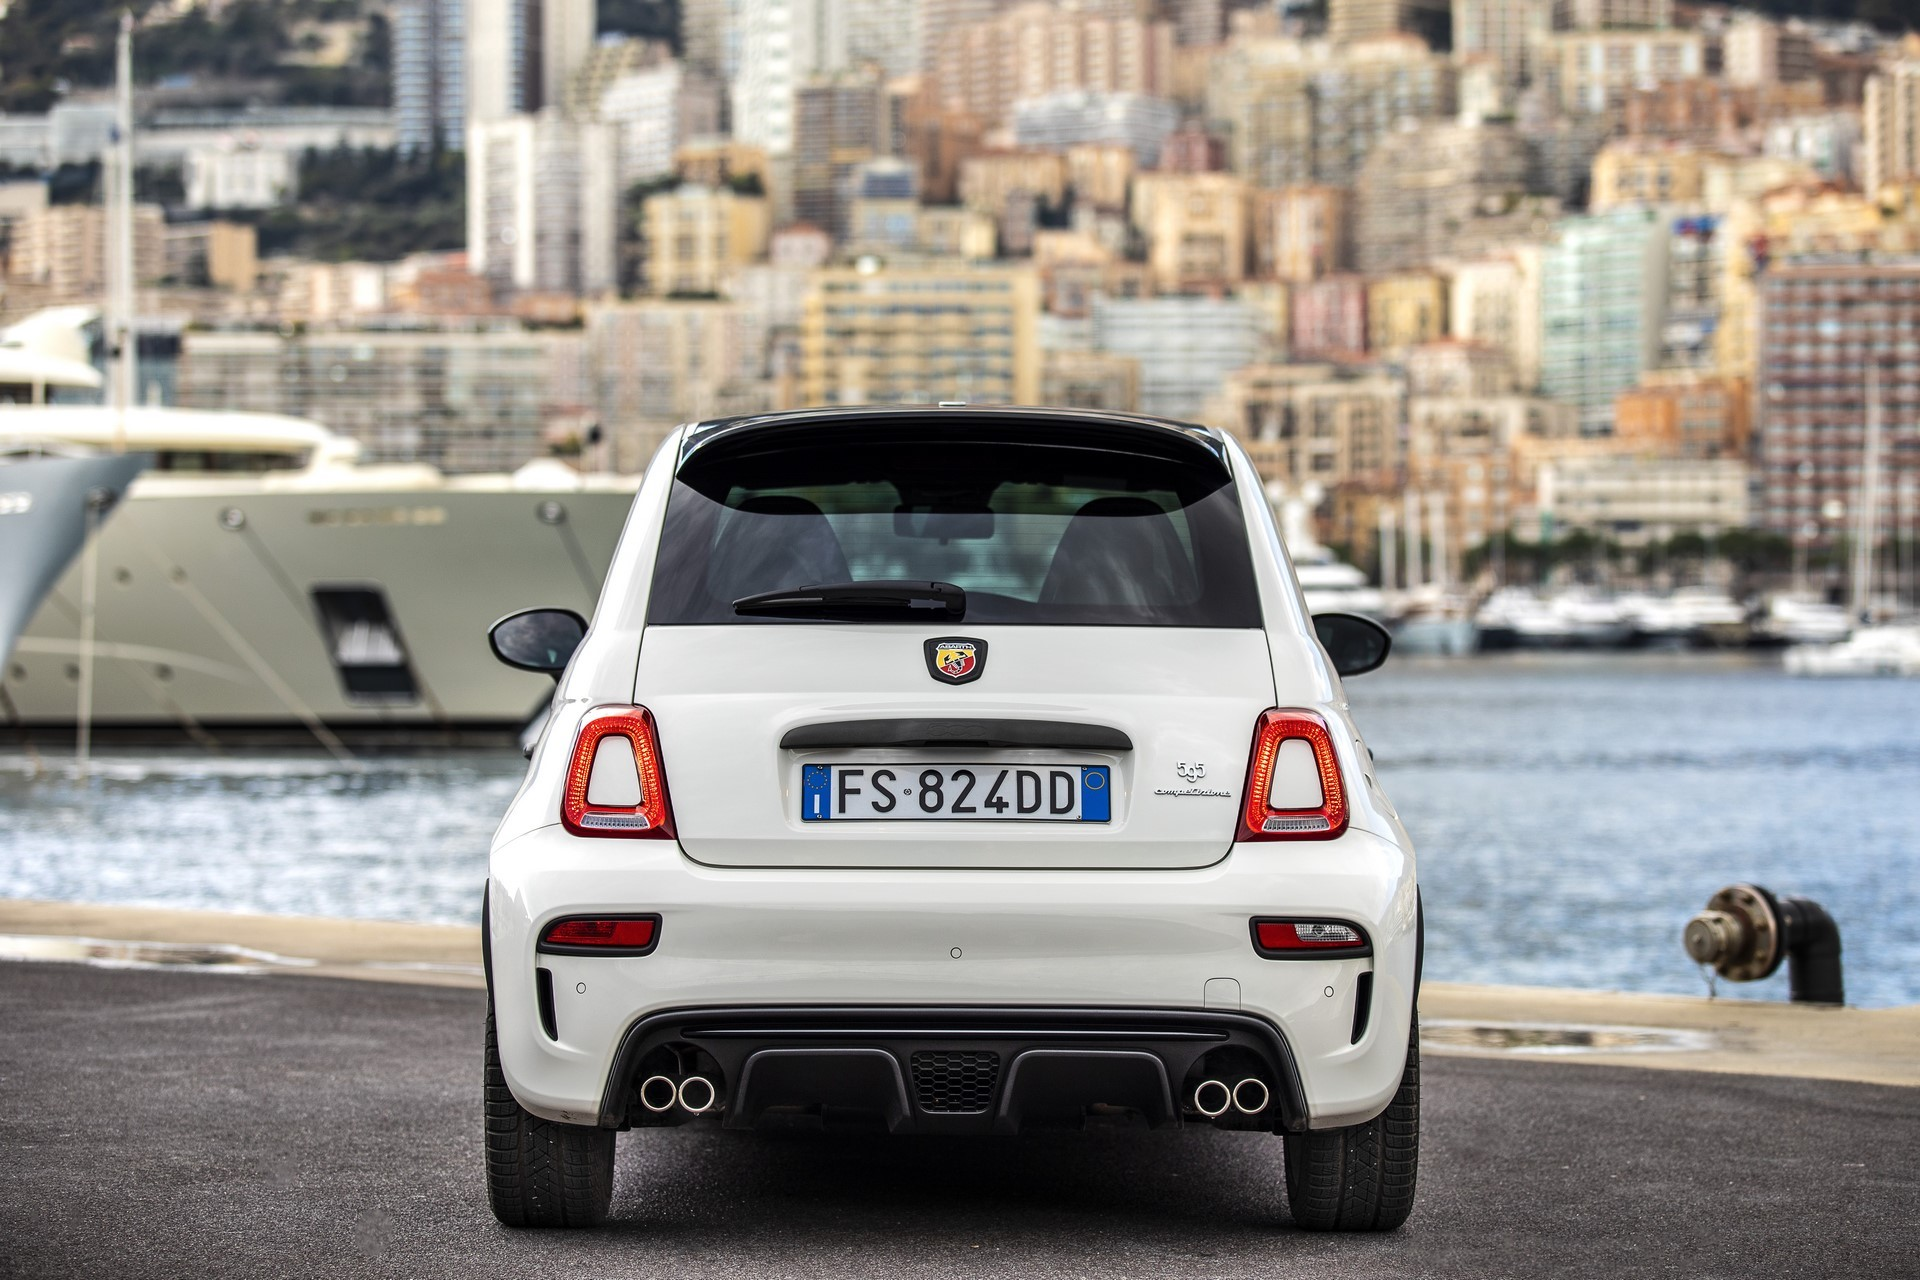 190129_Abarth_70th_Anniversary_range_17